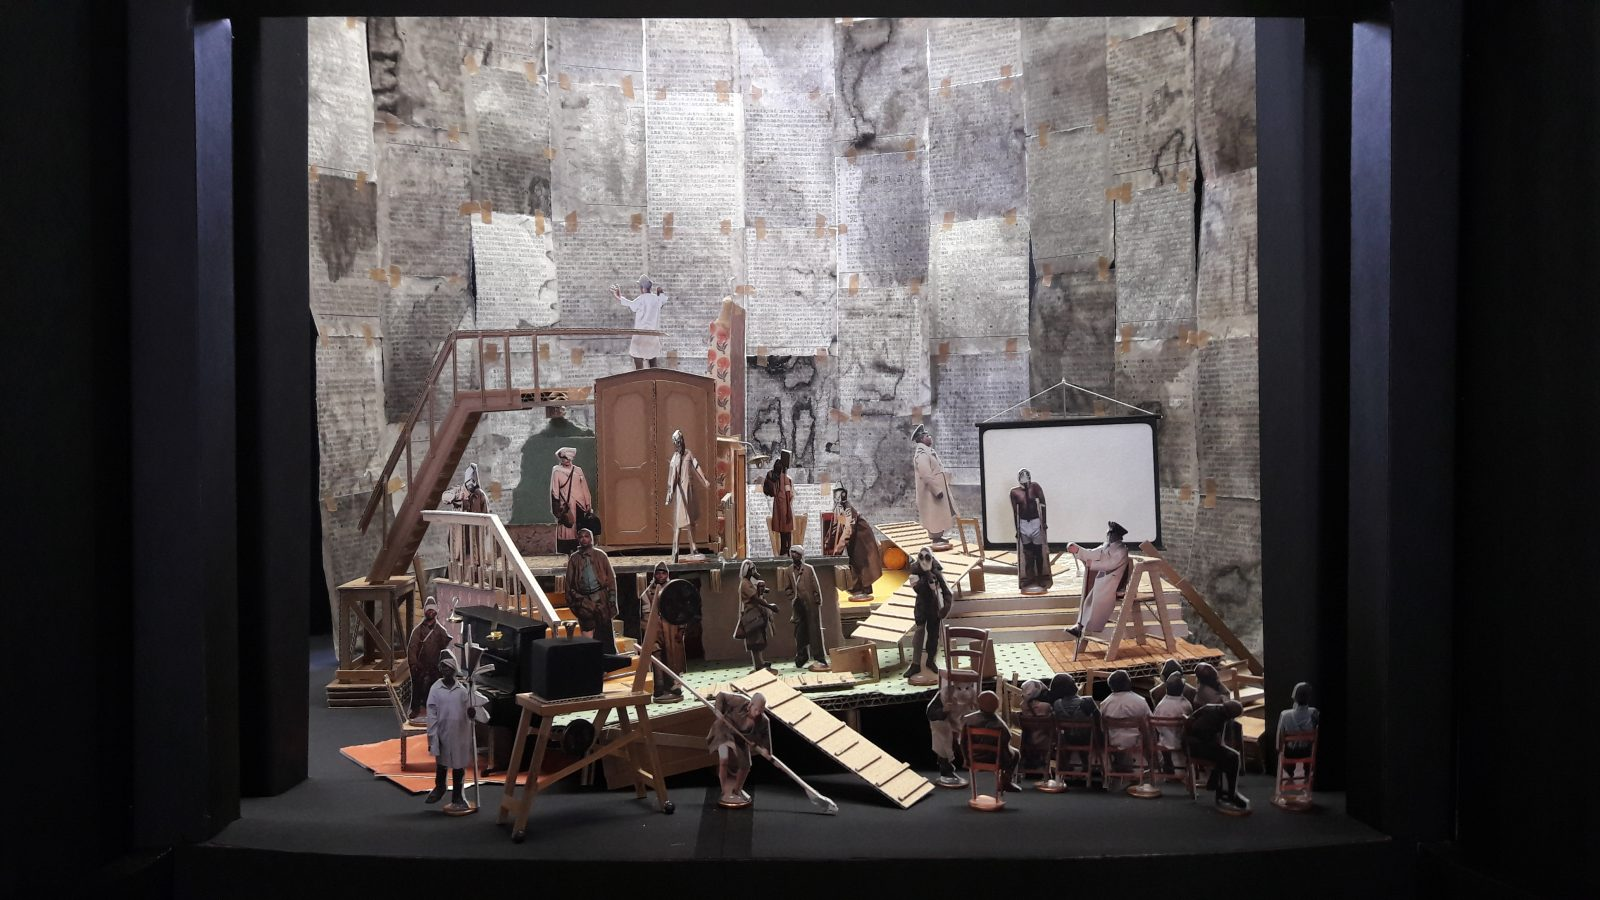 William Kentridge and Sabine Theunissen, Wozzeck | © Sabine Theunissen, courtesy of the author